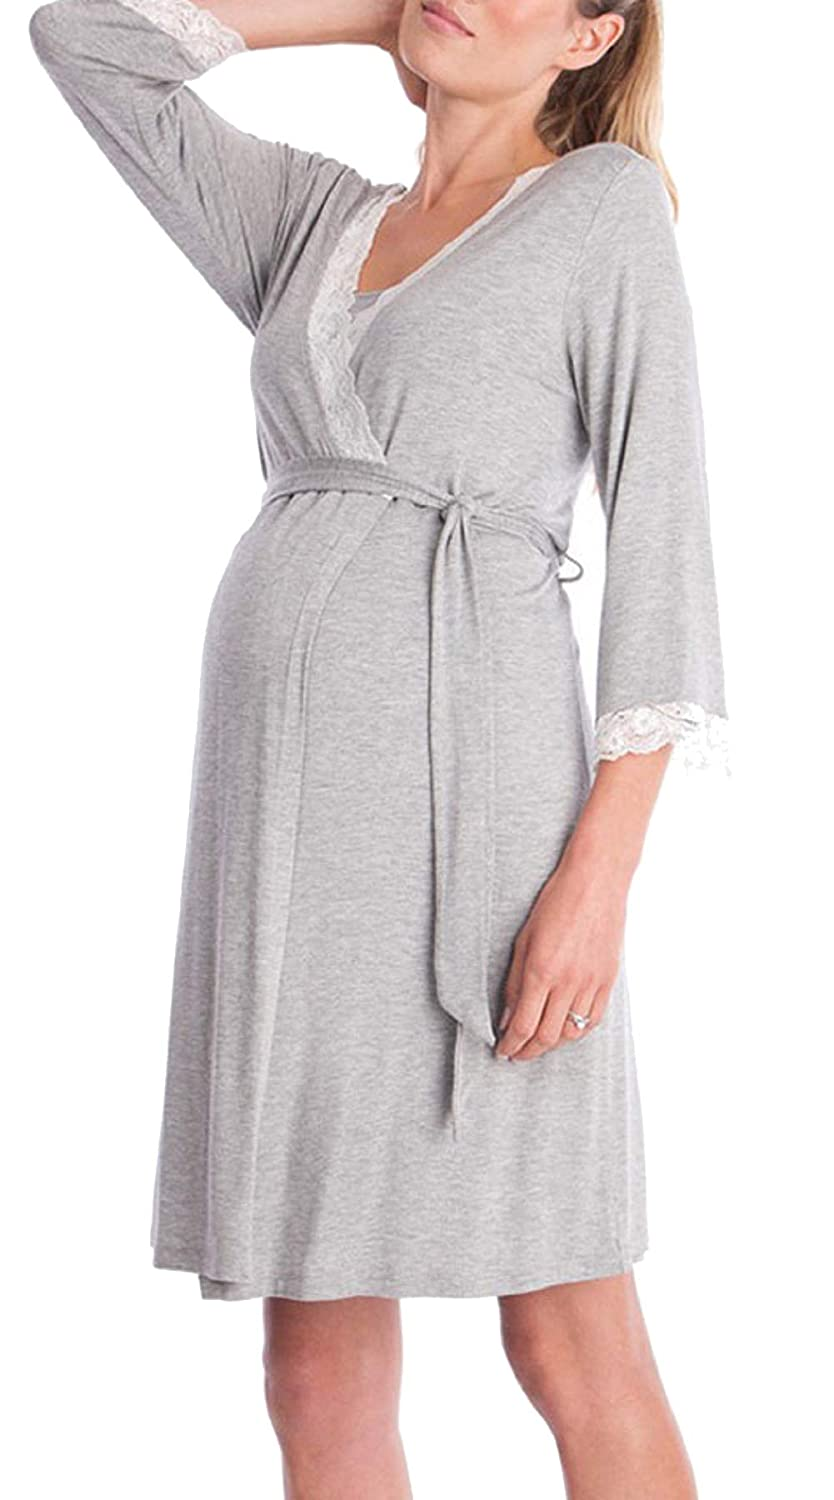 Semir Hospital Maternity Robe Labor Delivery Nursing Gown Hospital